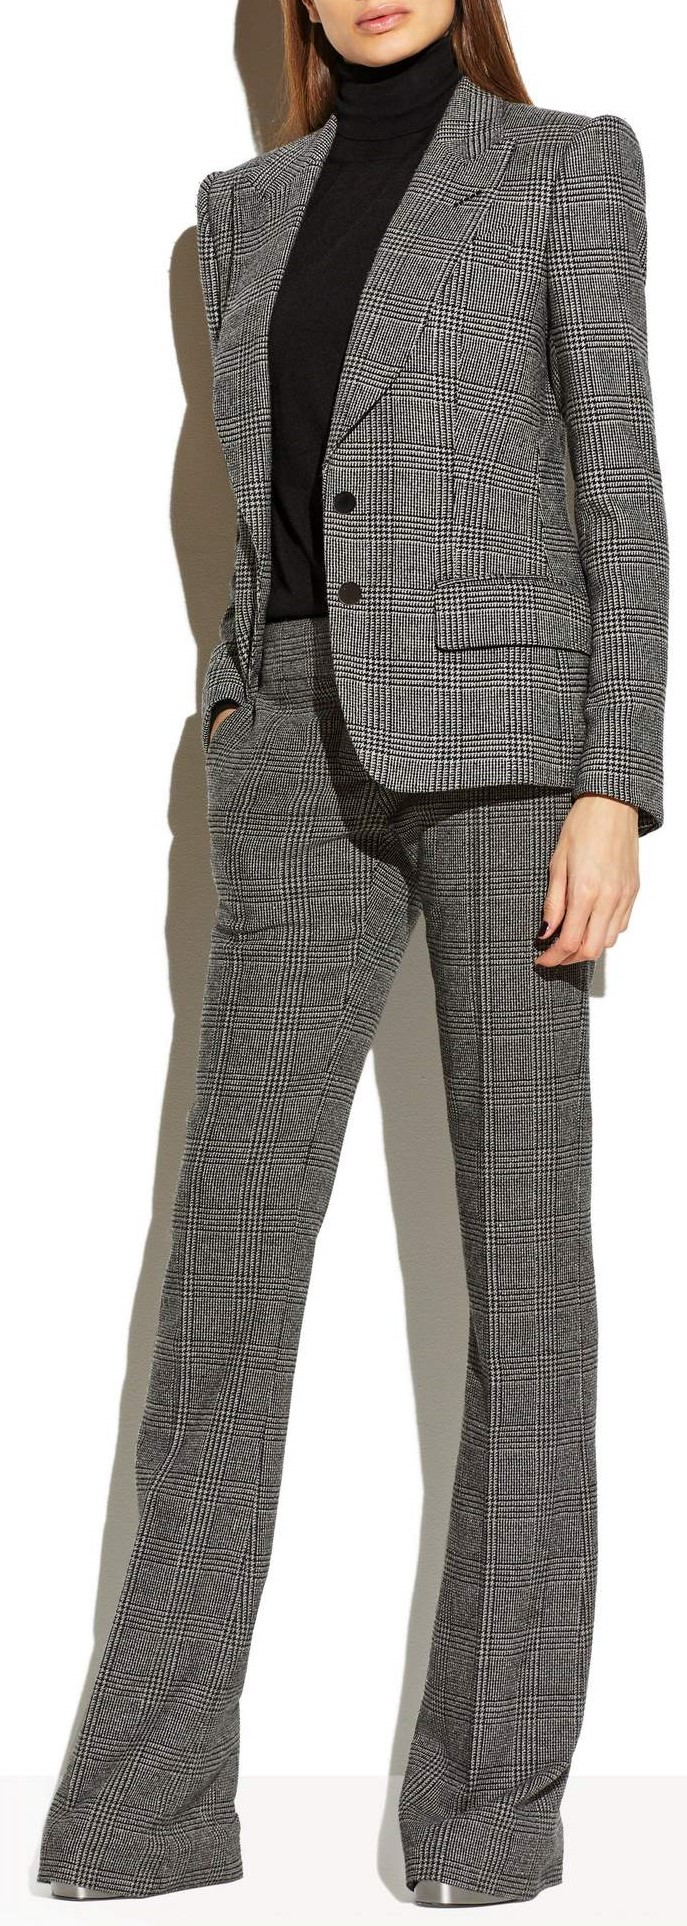 Tom Ford Prince of Wales Jacket and Pants